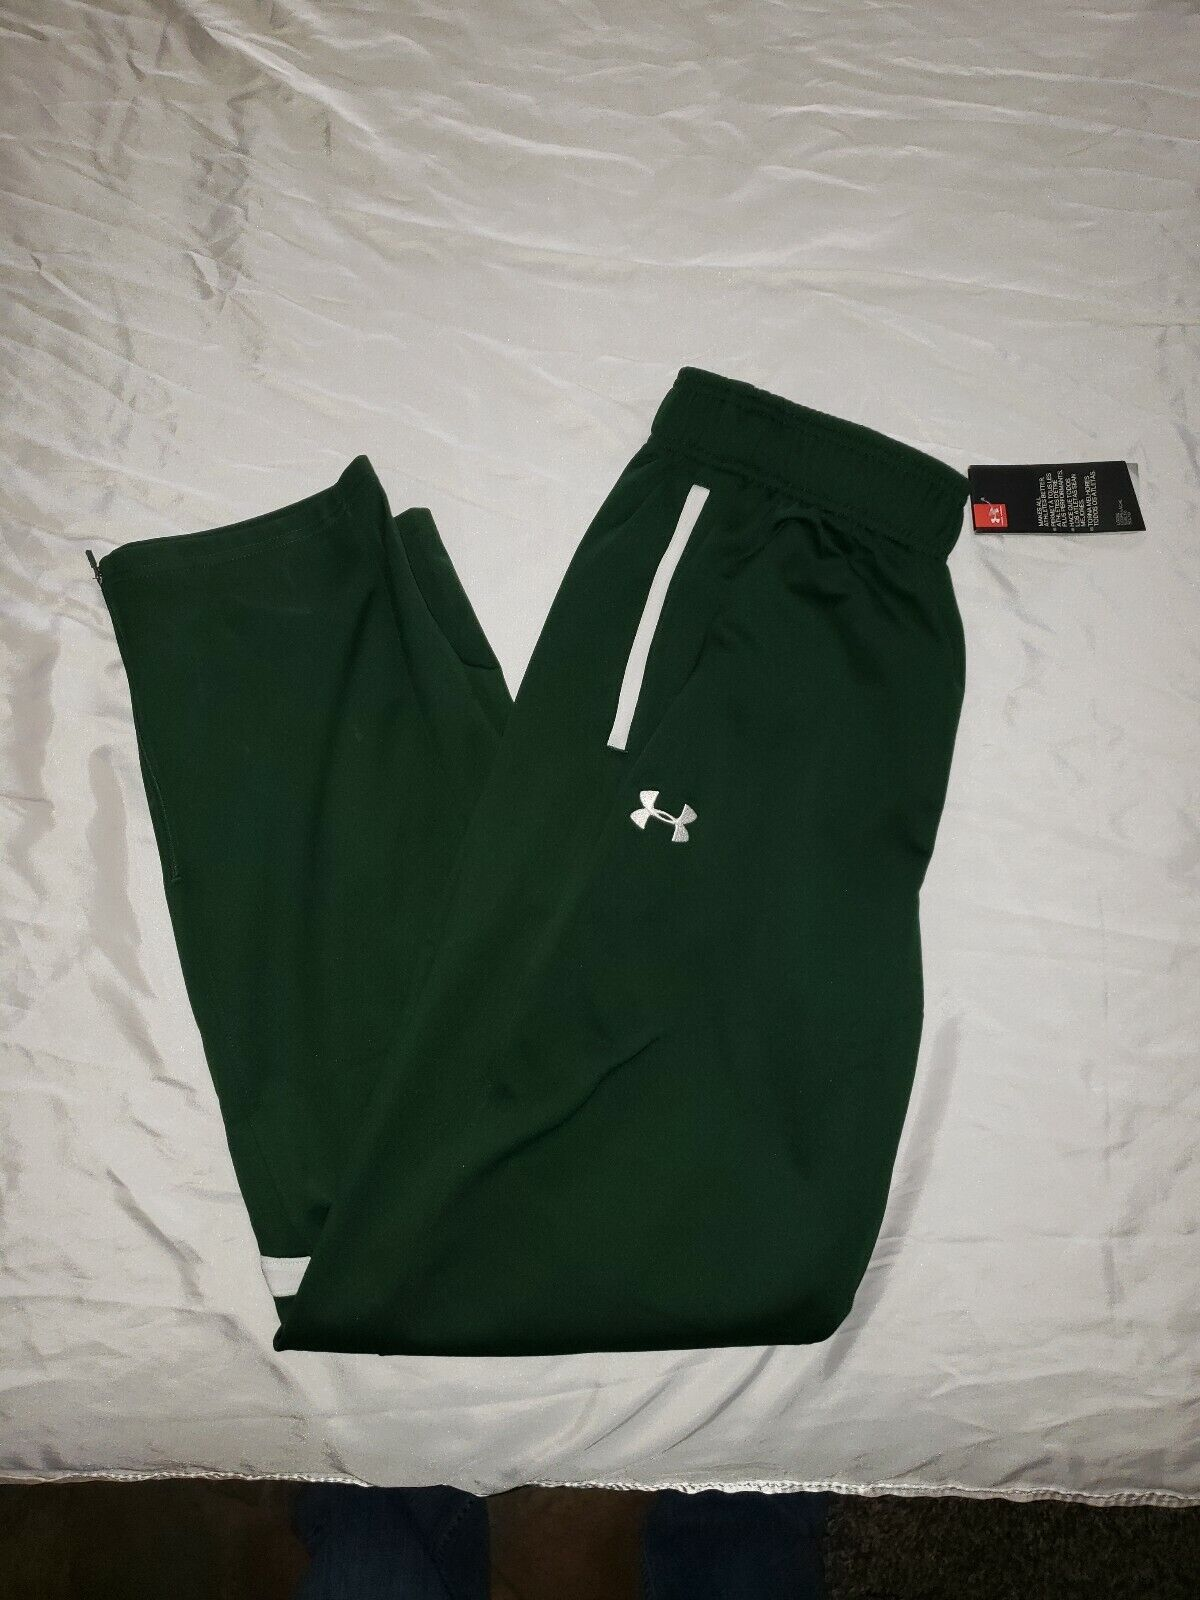 LG Hombre Under Armour Qualifier Wg Perf Pantalones cortos Green